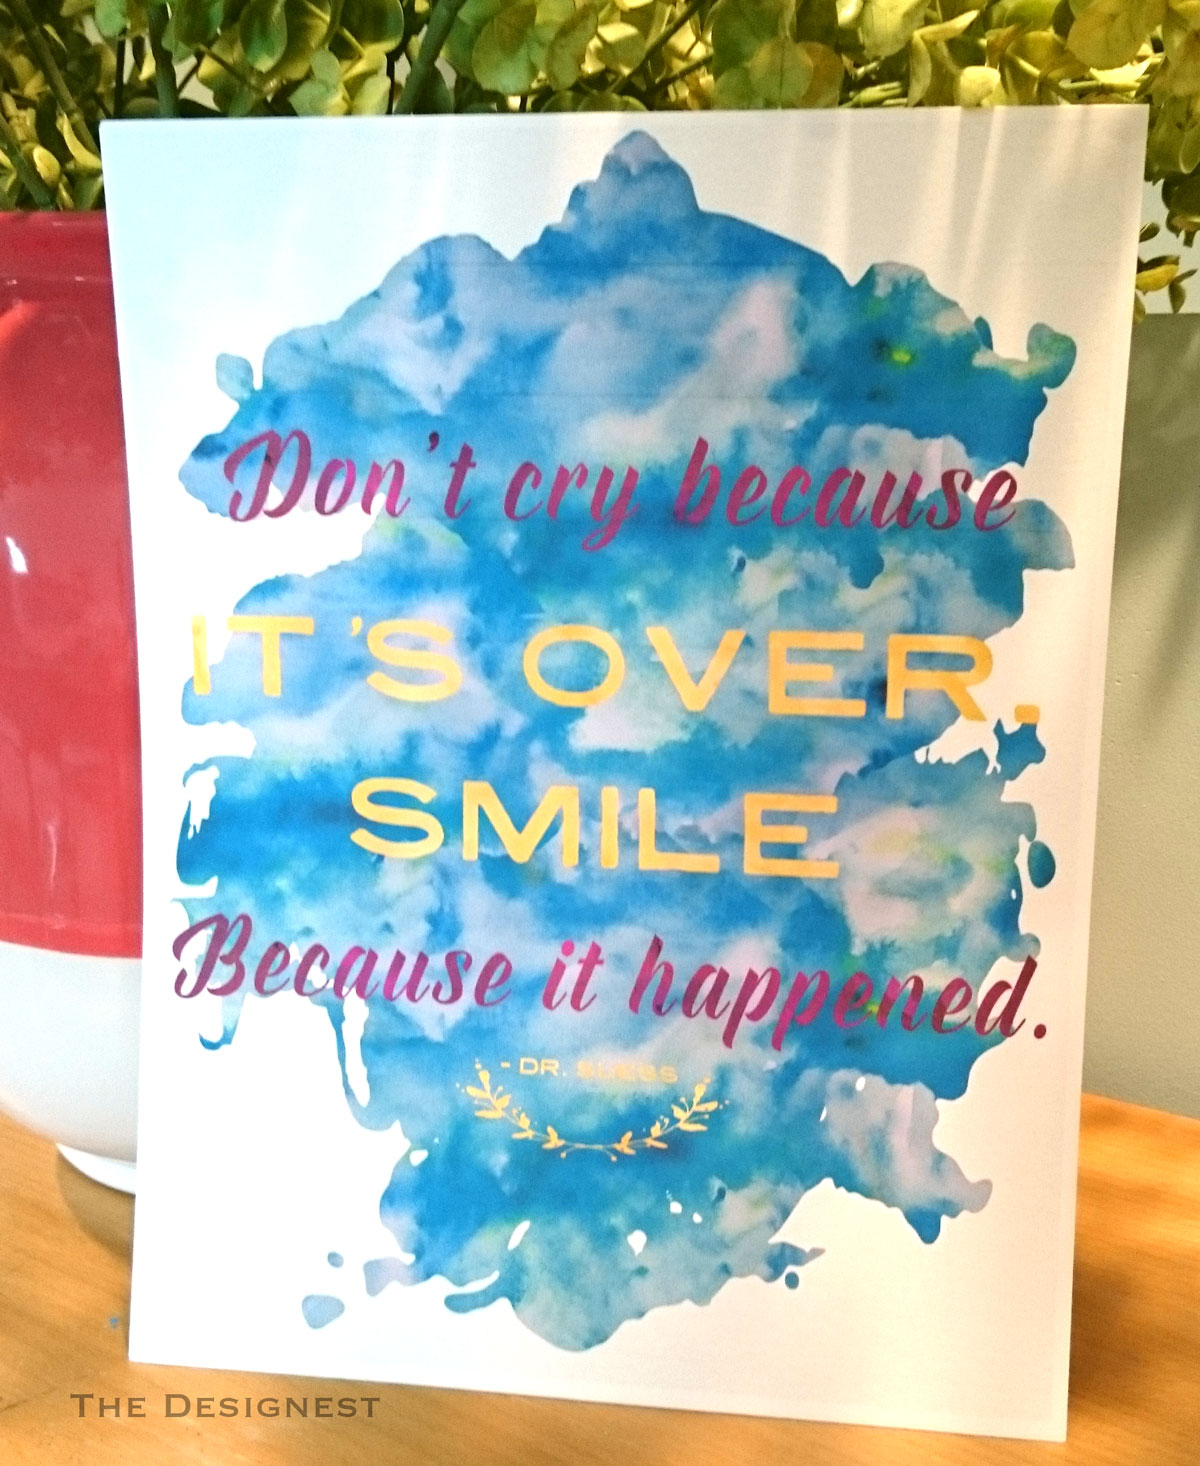 Don't Cry Because It's Over, Smile Because It Happened | Graduation Party Decoration Free Printable at The Designest